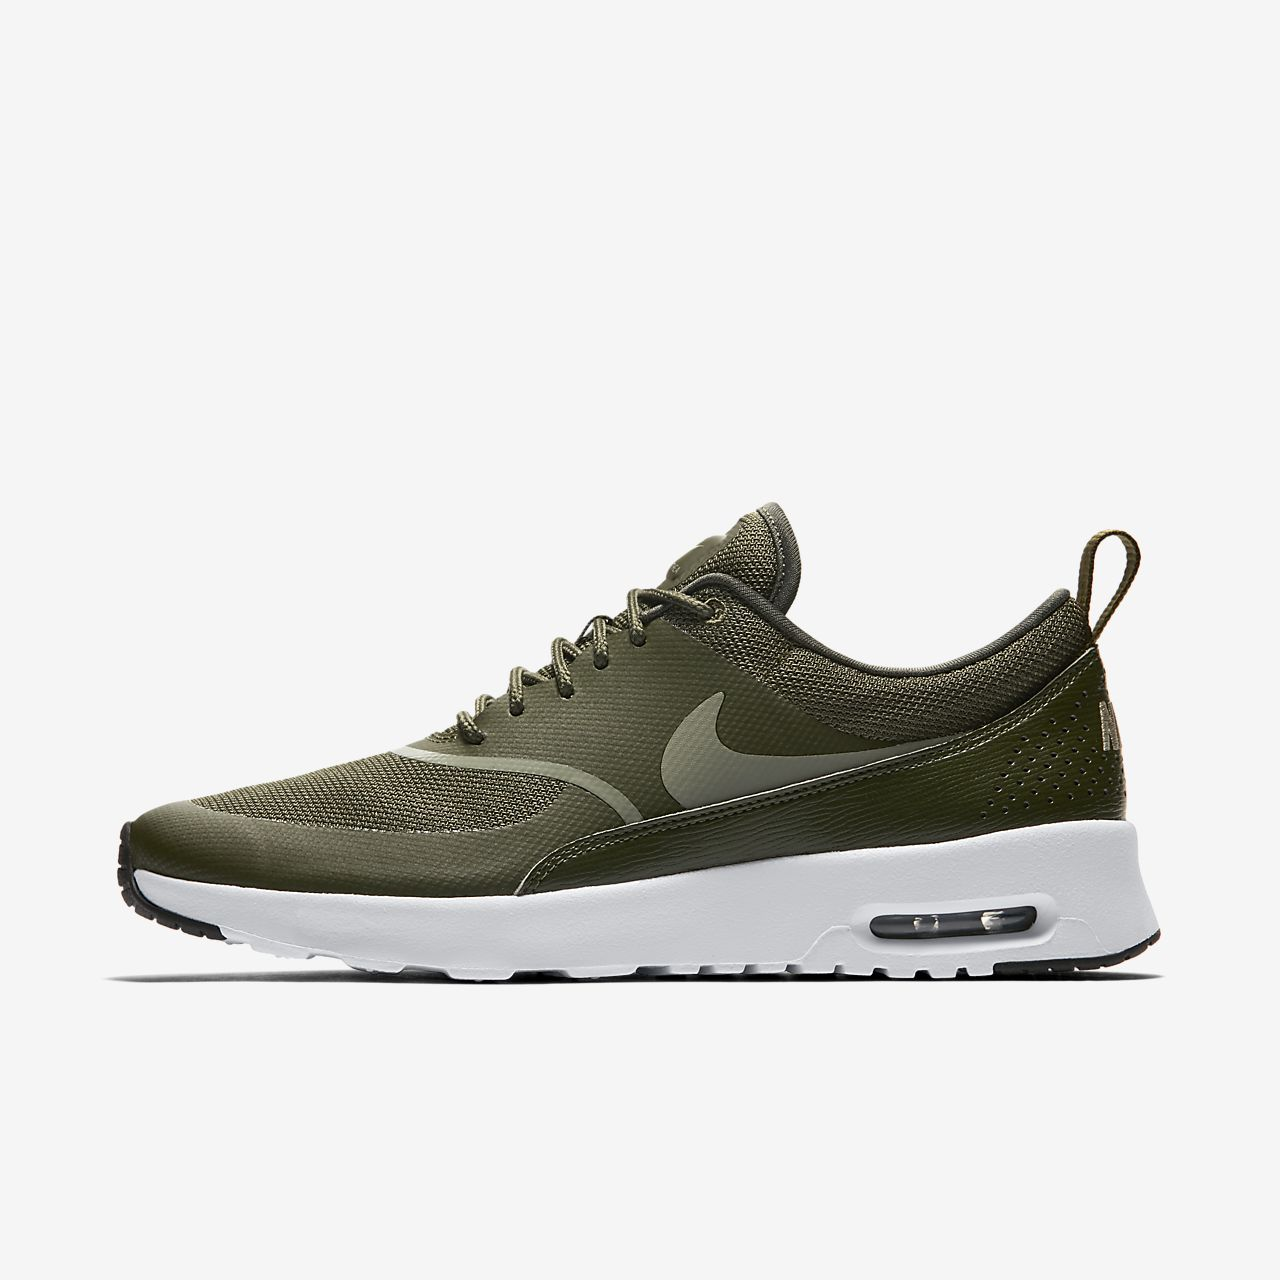 Nike Coureurs Thea Air Max Connecter